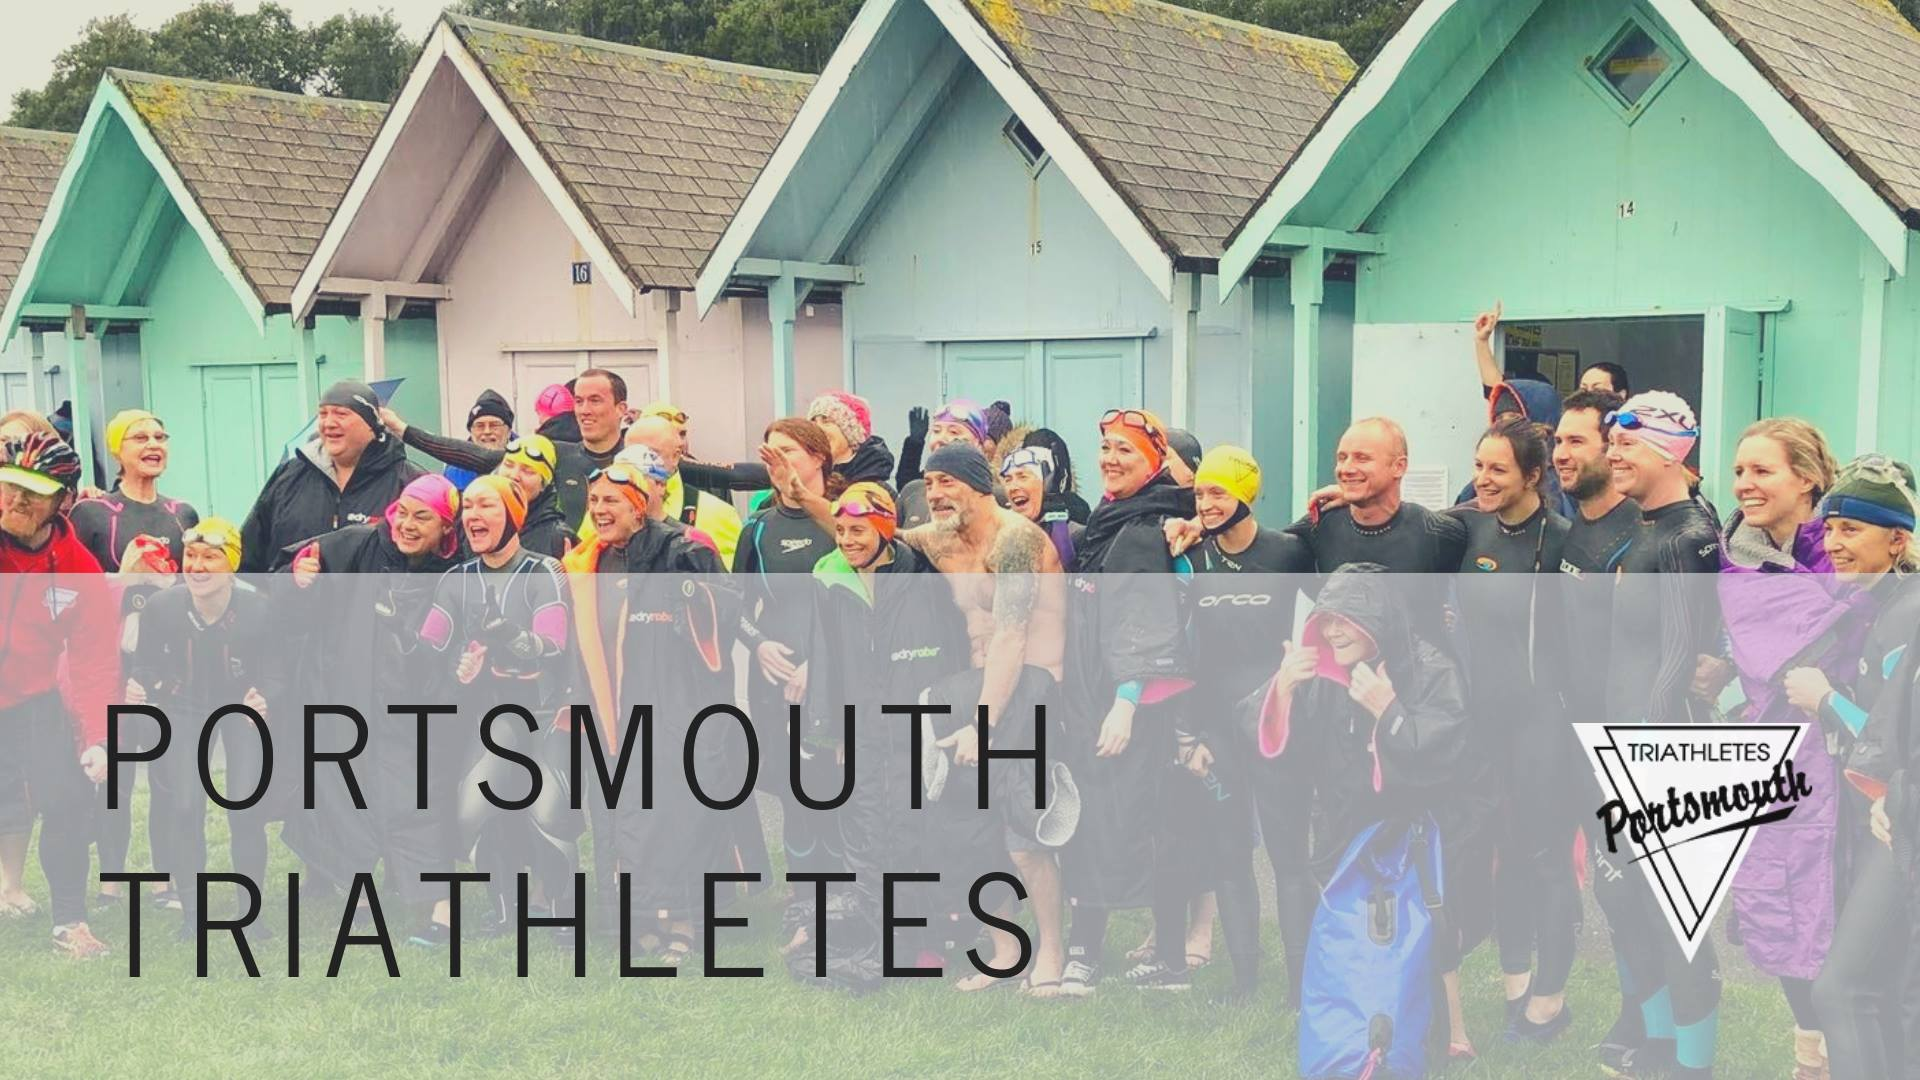 Established in 1988 and now with over 500 members, Portsmouth Triathletes are a friendly, social club which warmly welcomes members of all levels. Whether you're a complete novice (don't own a bike, swim with armbands, run at snail's pace), an experienced, elite athlete (your bike cost more than your car, swim round the Isle of Wight for fun, think ultras are too short) or somewhere in between, you can join!